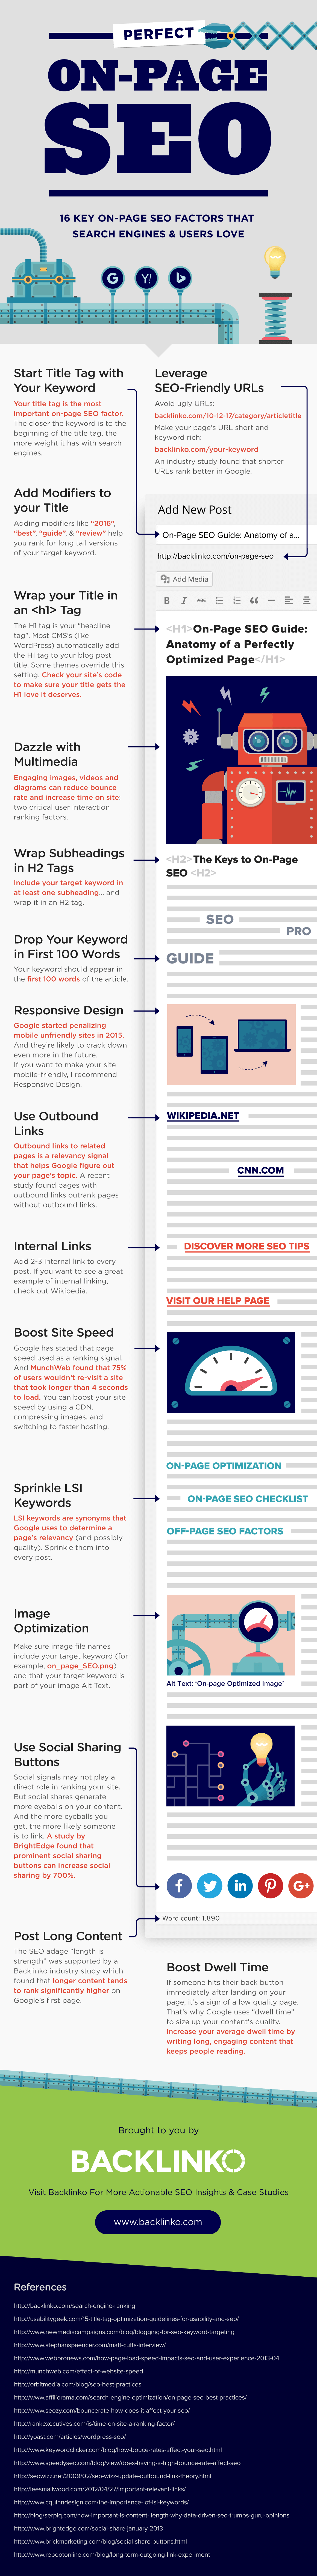 On Page SEO infographic for small business website from Backlinko